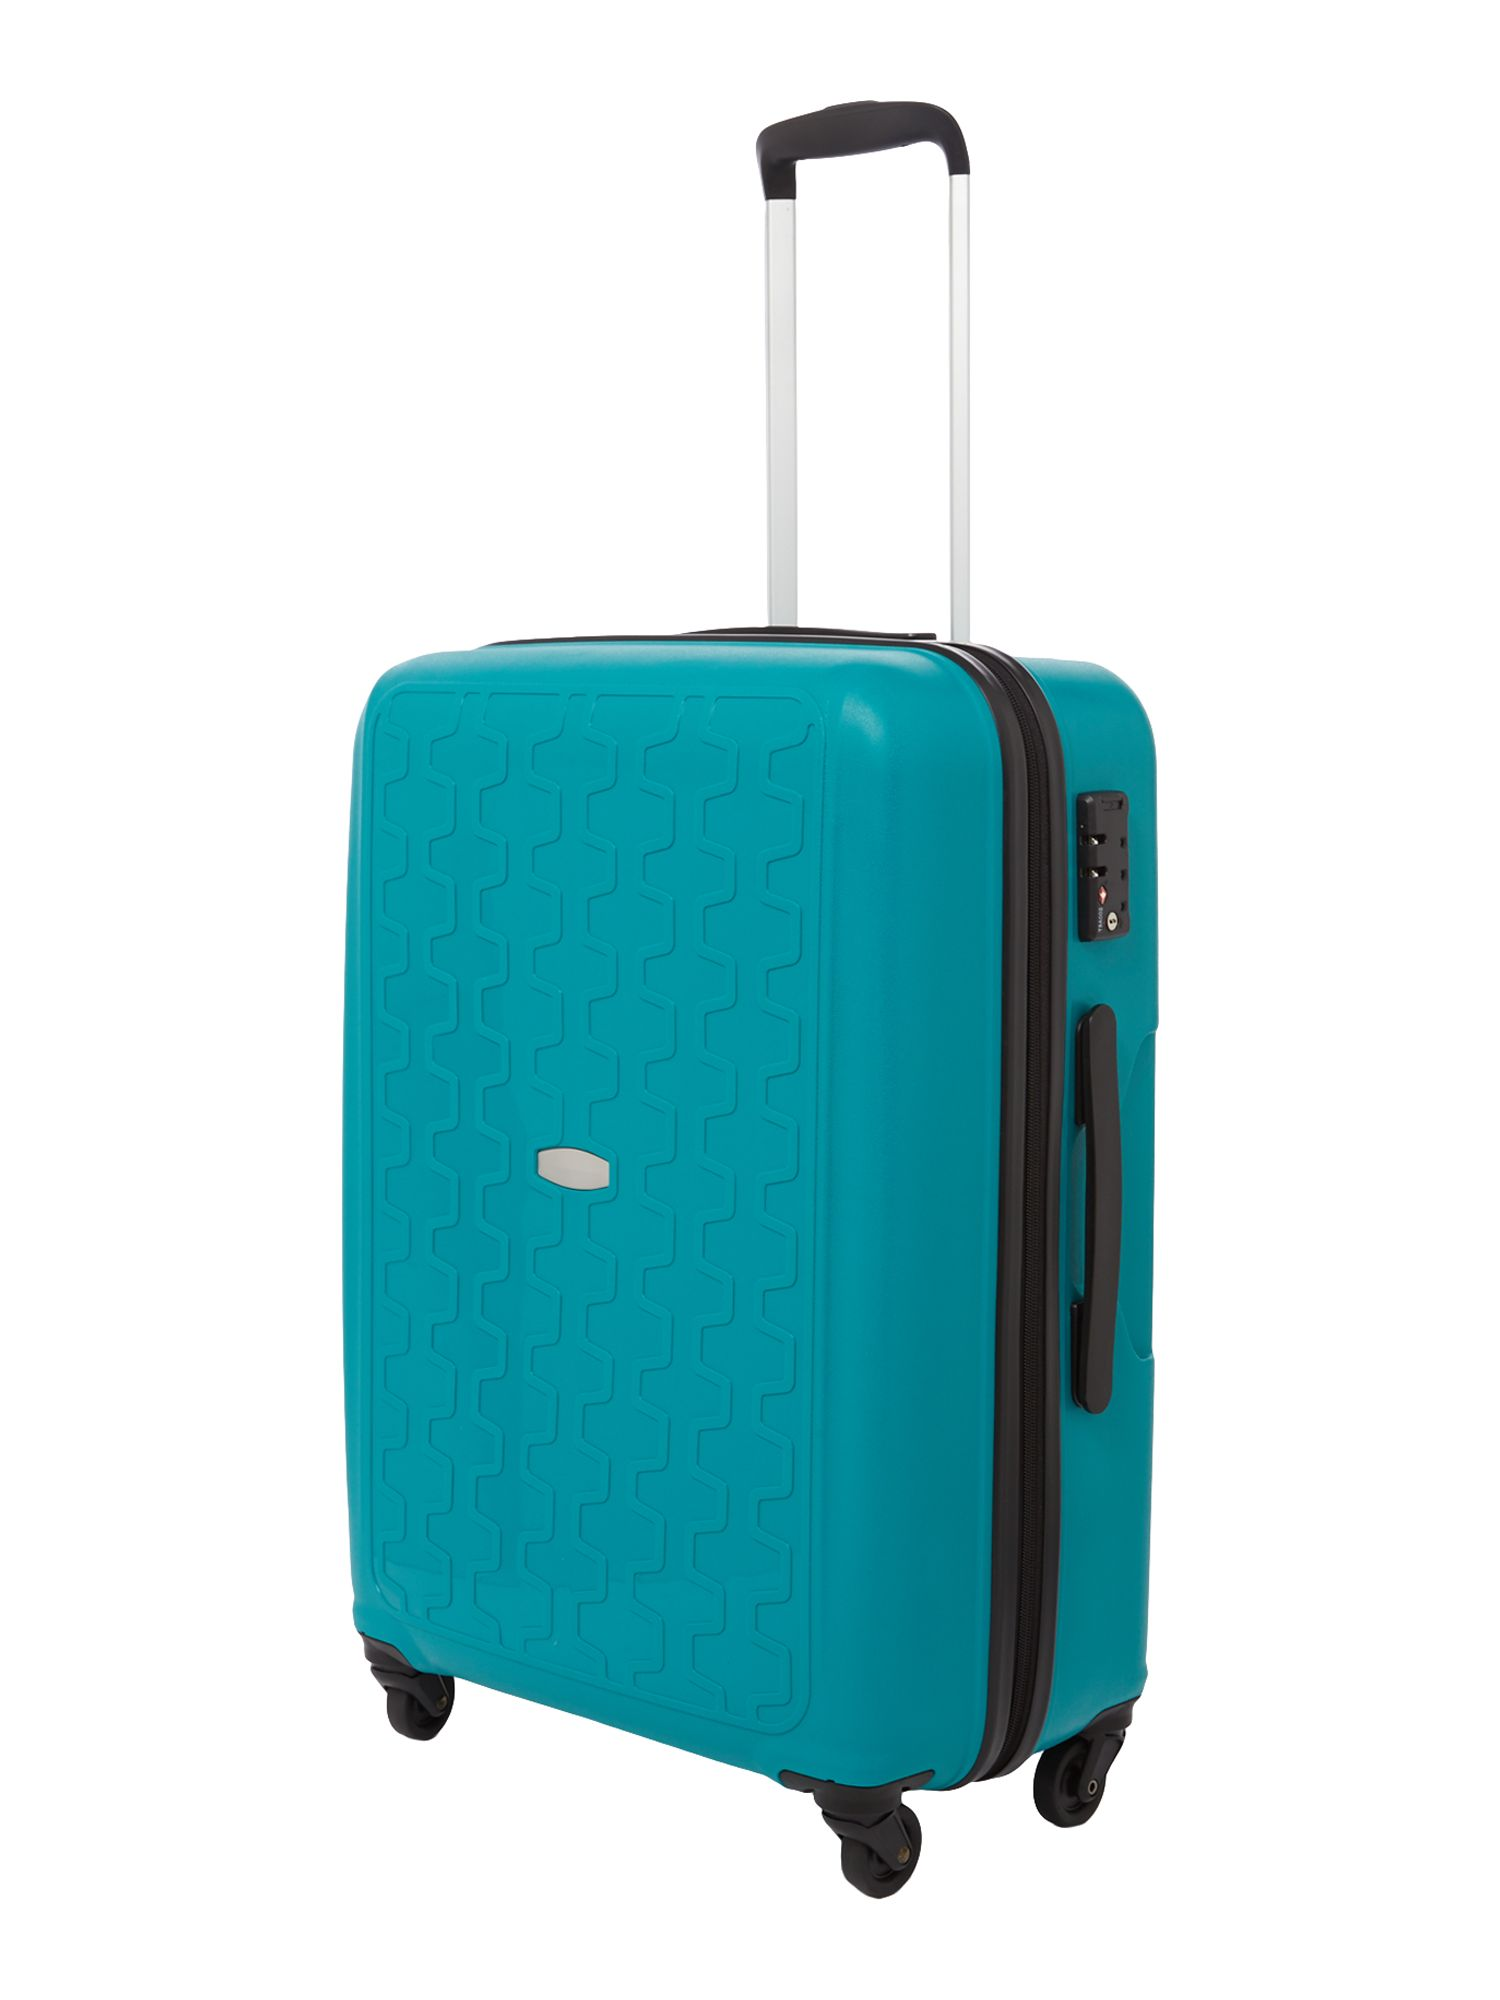 Moblite teal 4 wheel medium case